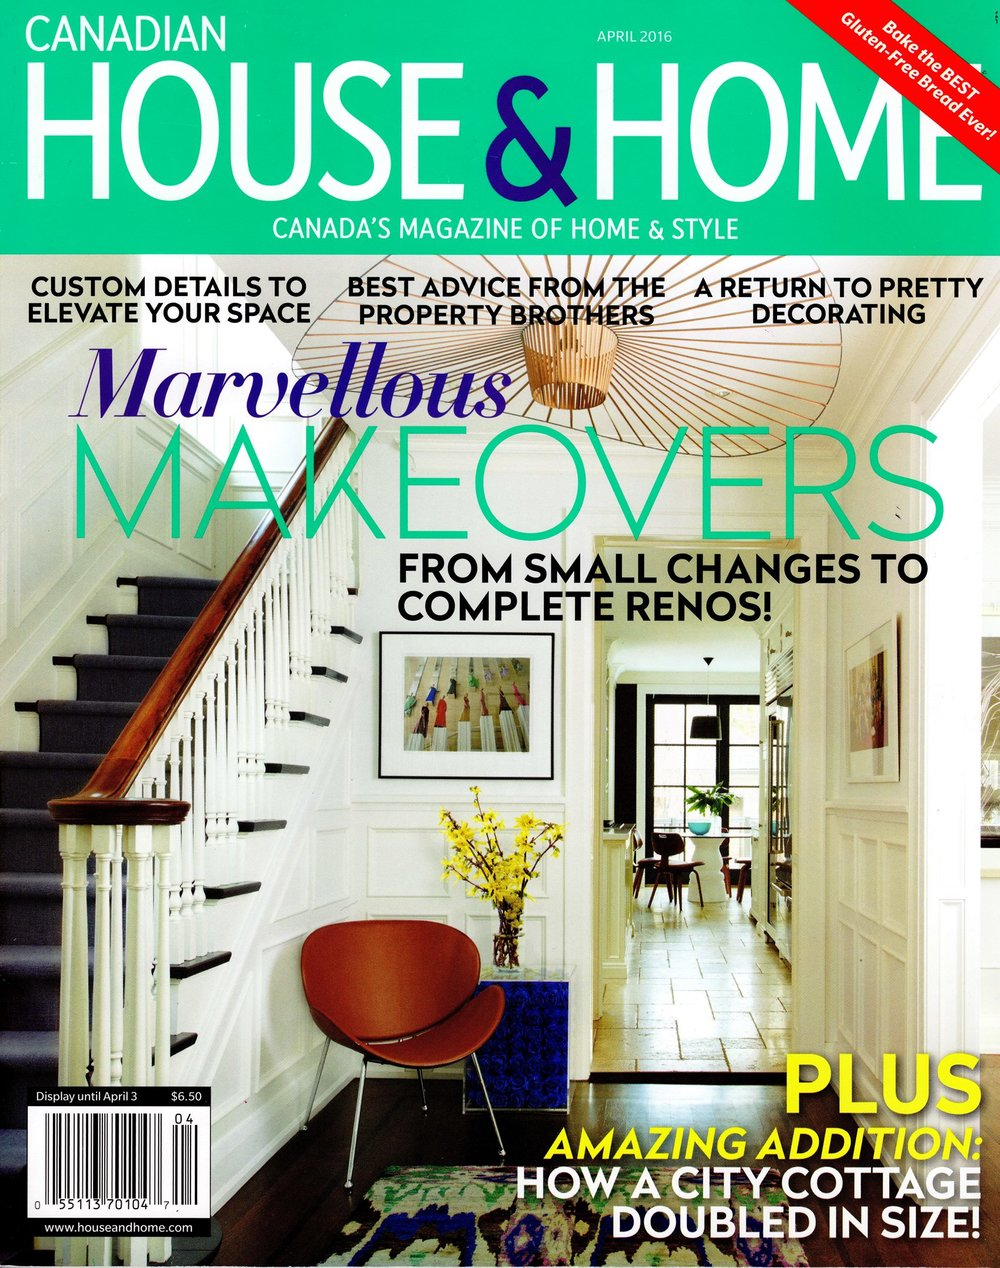 House & Home / April 2016